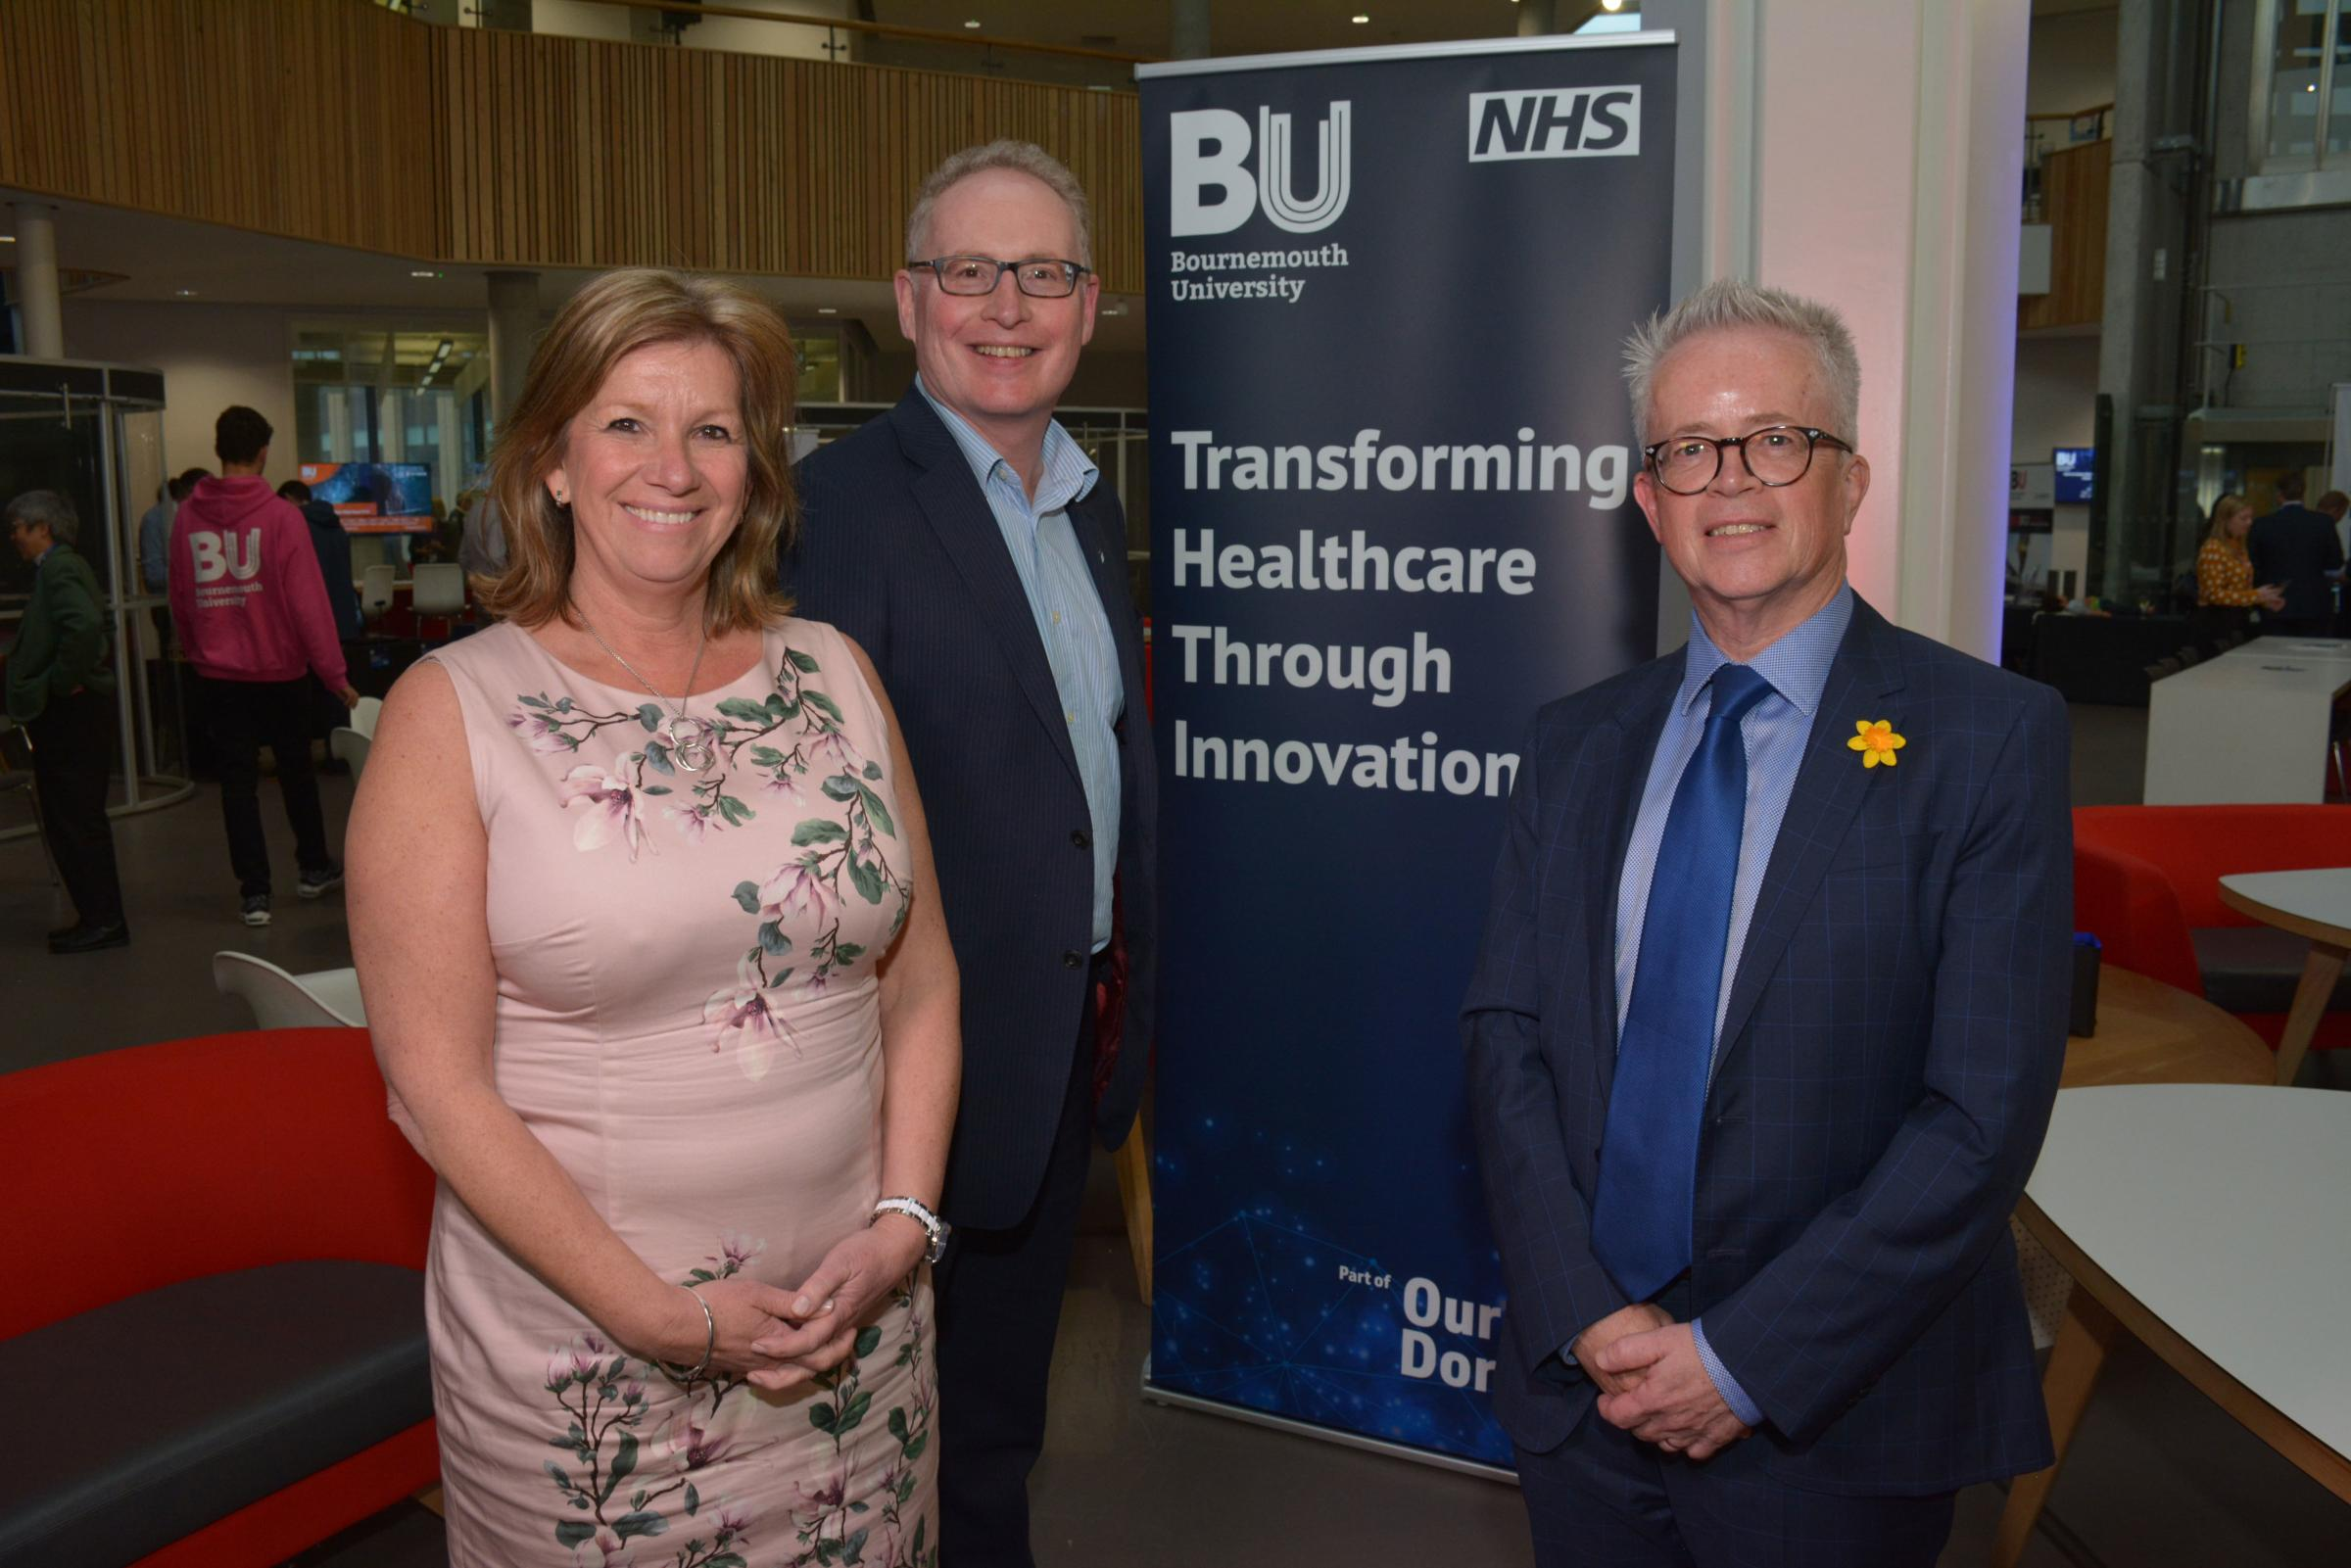 Meeting shows way forward for digital healthcare